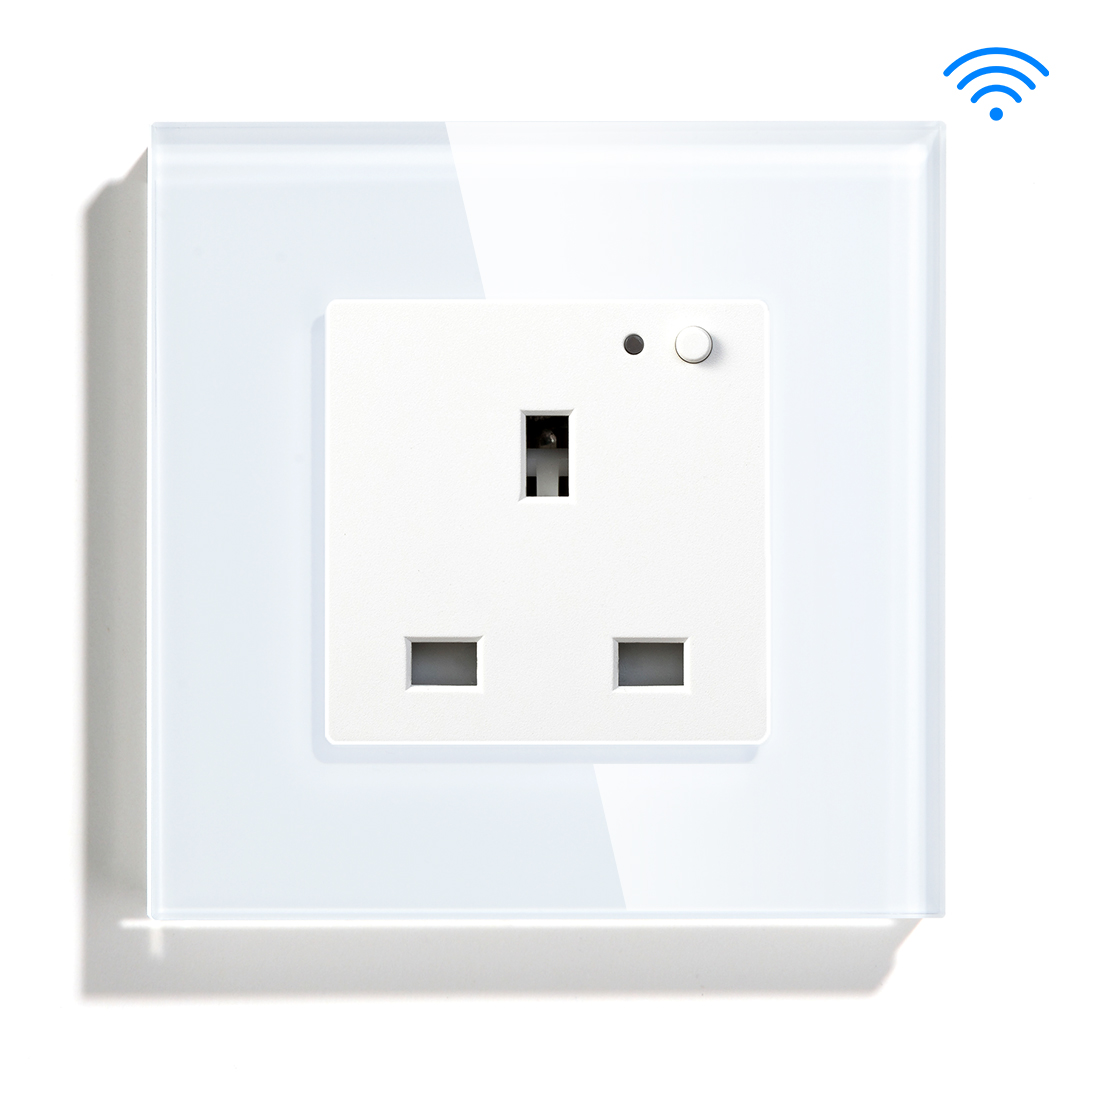 Wall Socket Wall Socket Smart Socket  WIFI Socket White Black GoldWall Socket Wall Socket Smart Socket  WIFI Socket White Black Gold